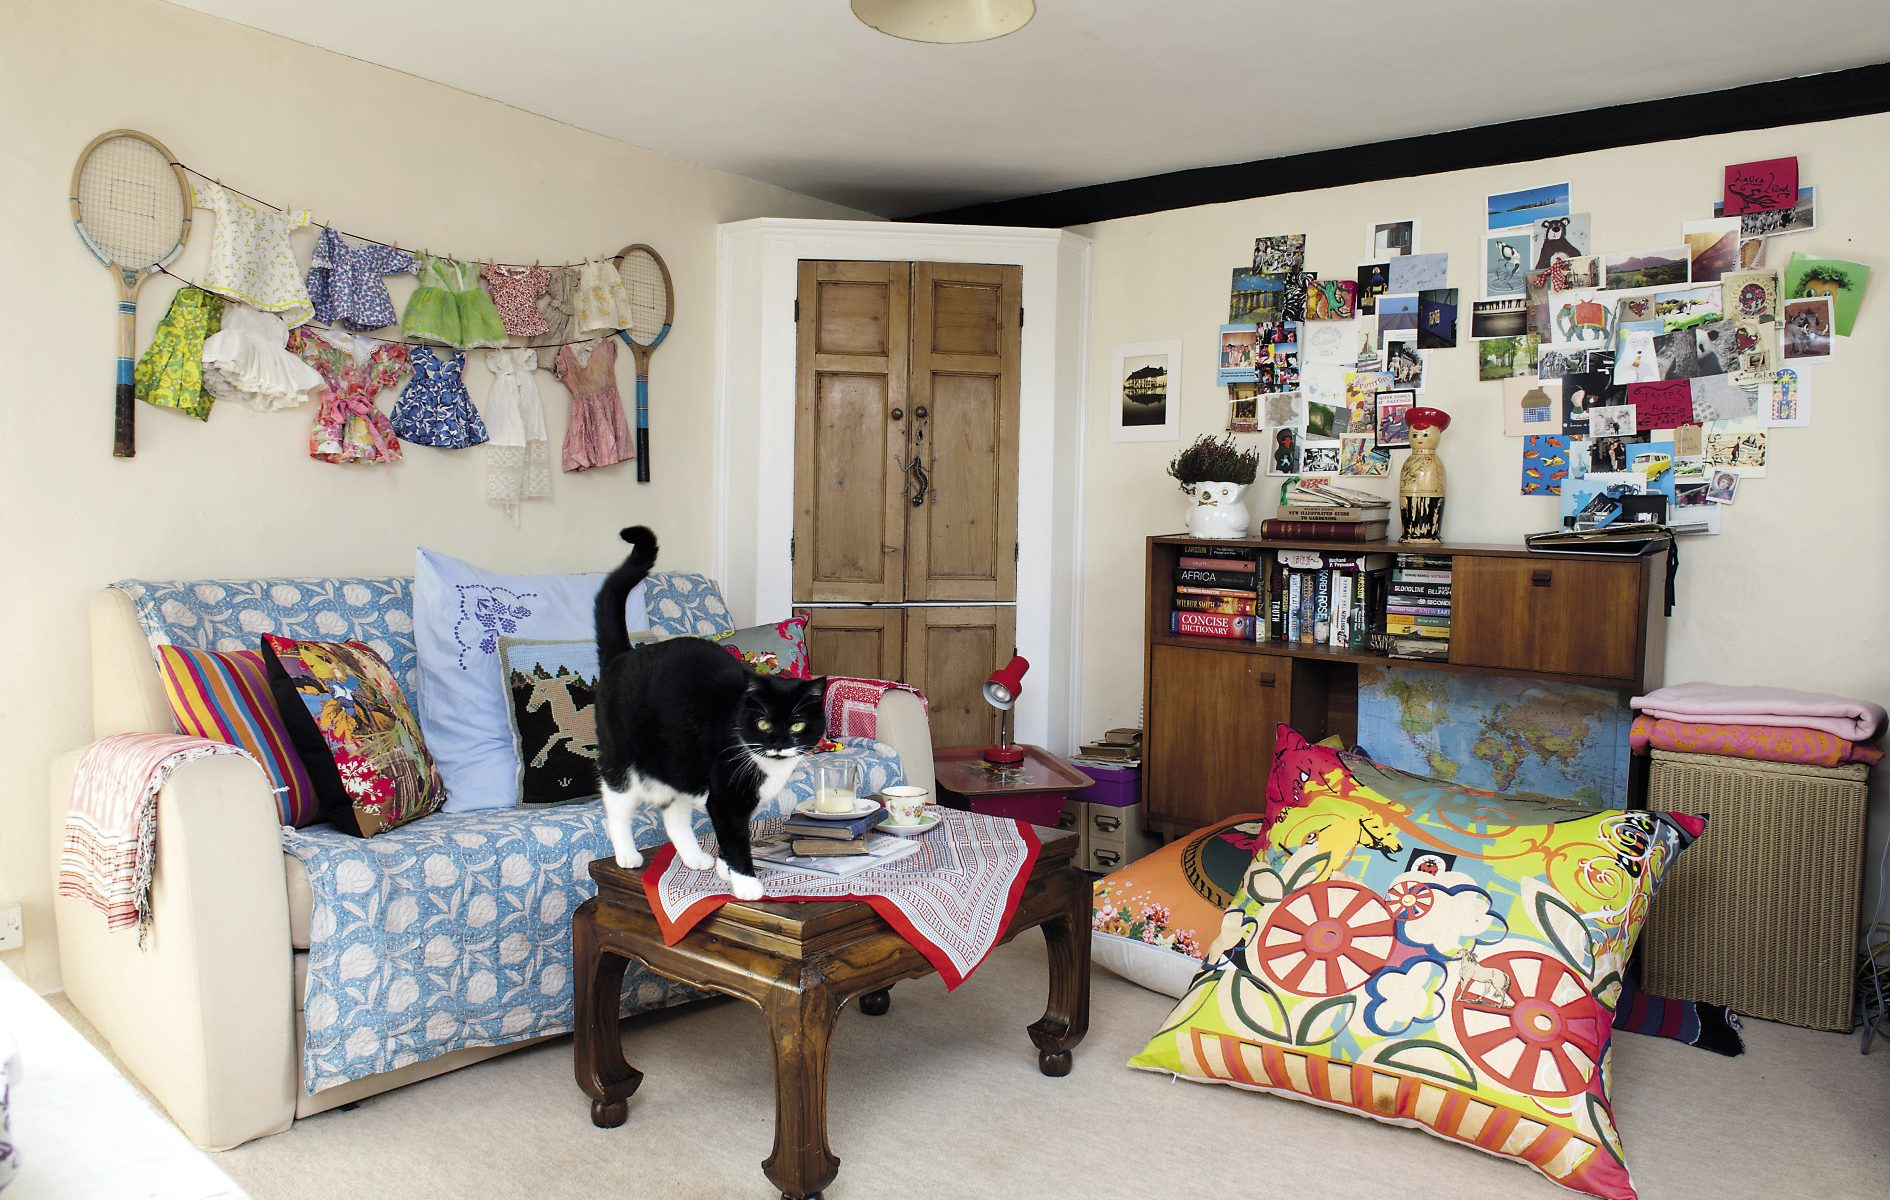 The snug on the first floor is home to some of the fabrics that Laura can't resist accumulating